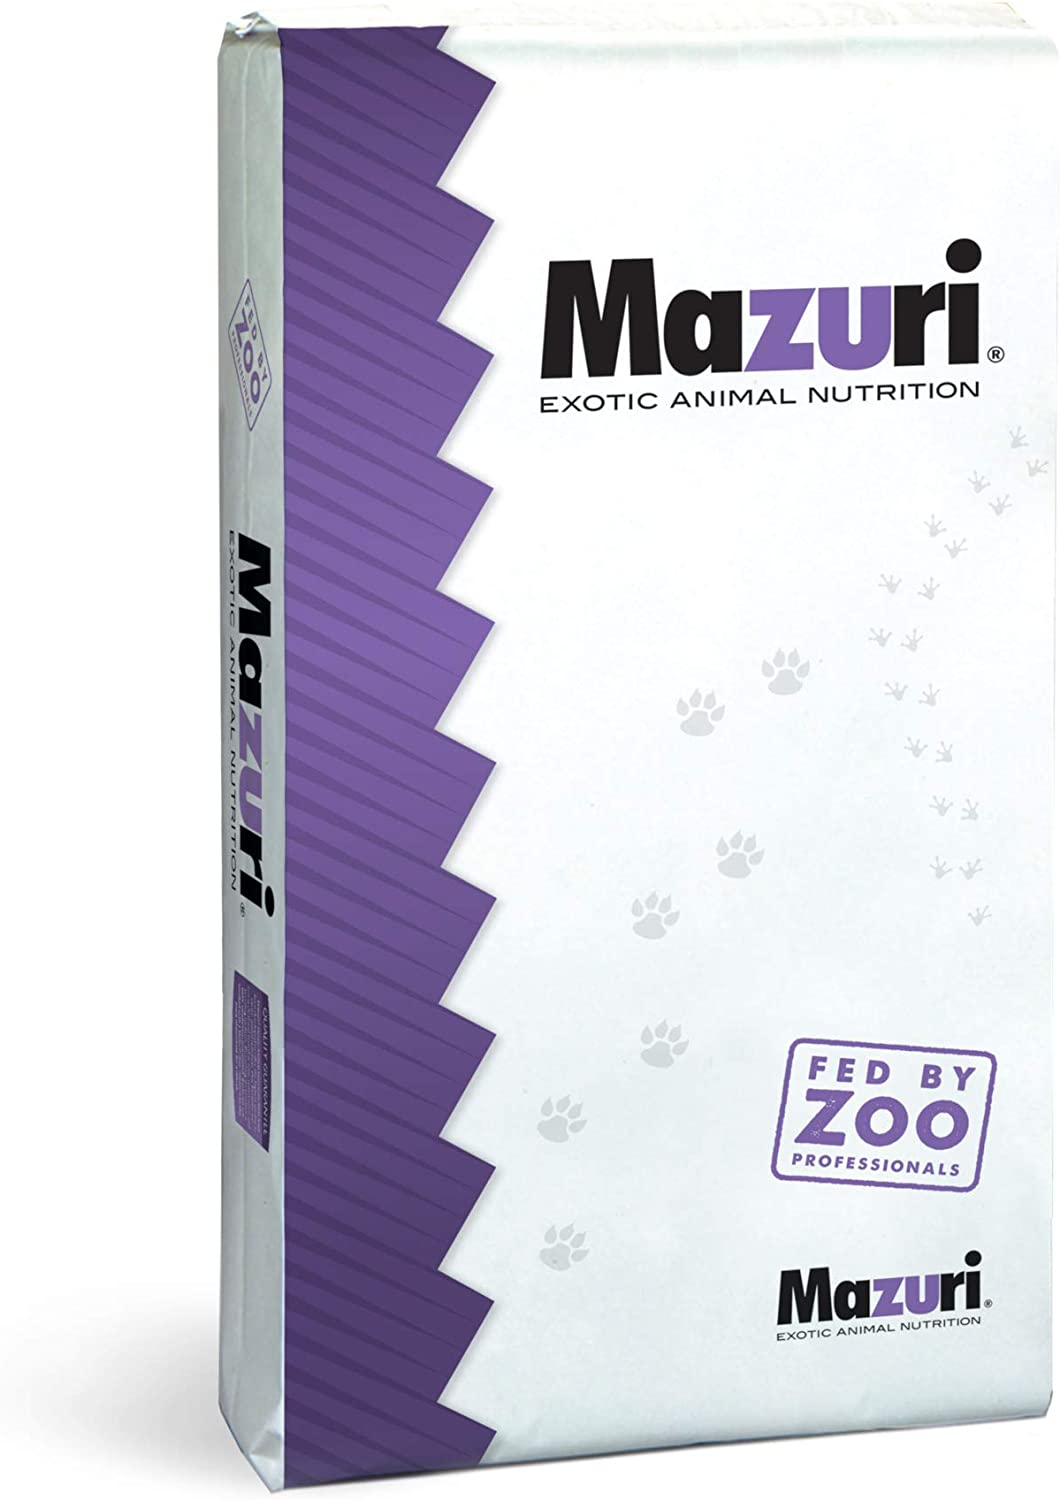 Mazuri | Nutritionally Complete Low-Starch Food for Small Herbivorous Reptiles | 25 Pound (25 lb.) Bag